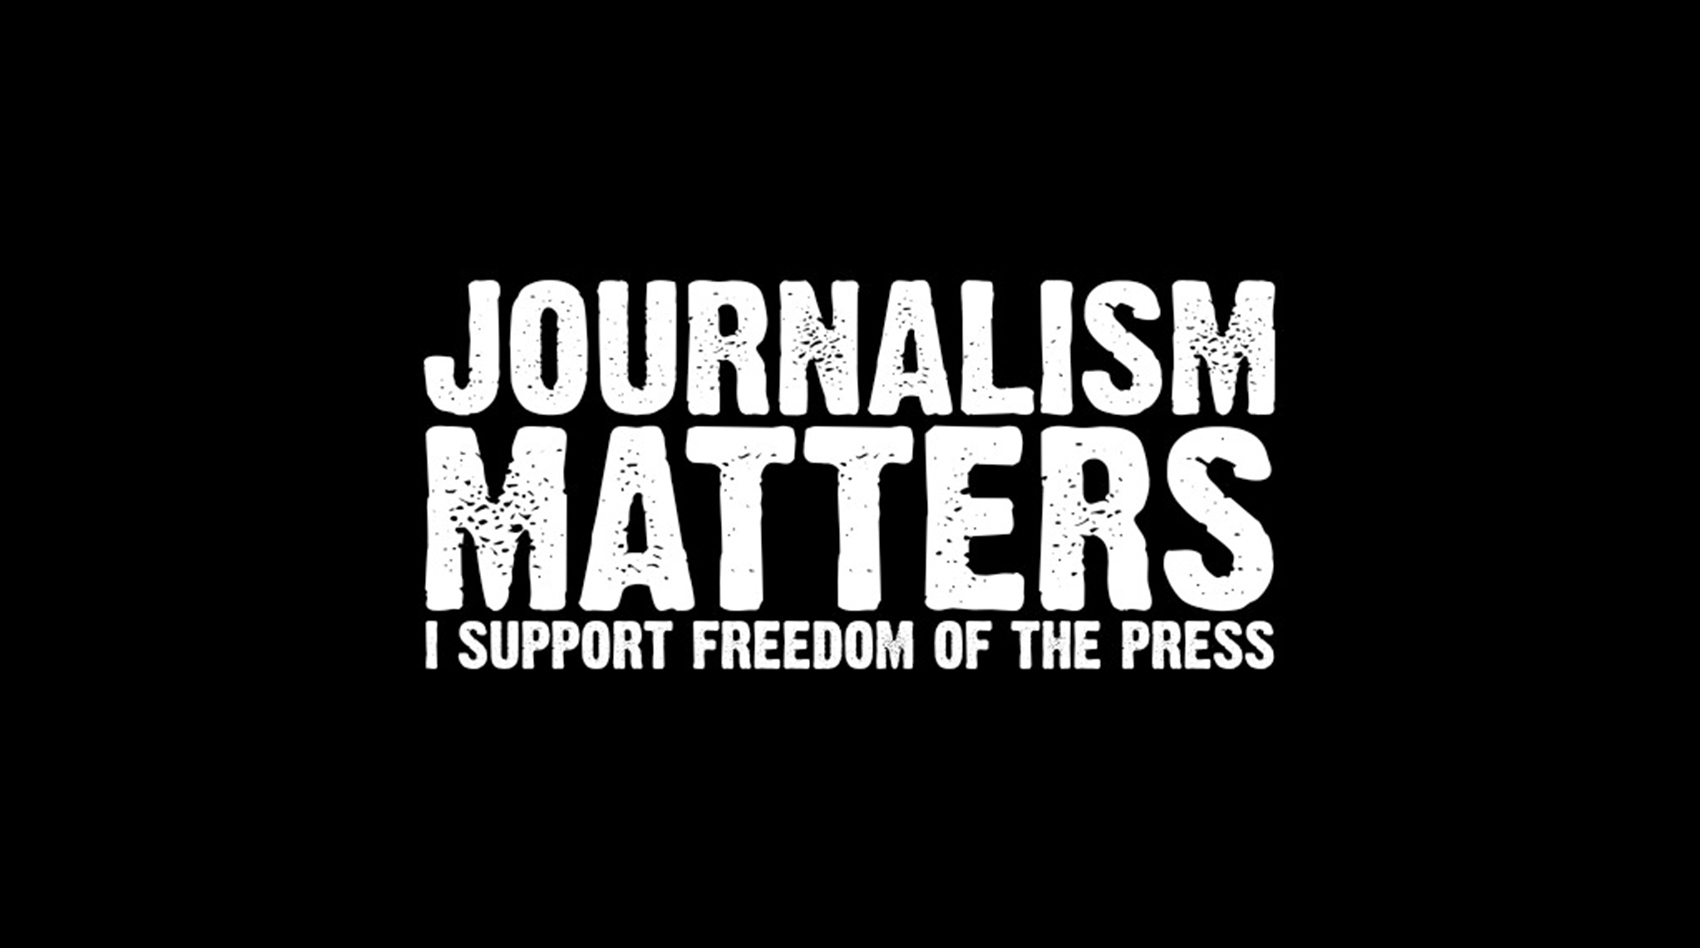 #JournalismMatters